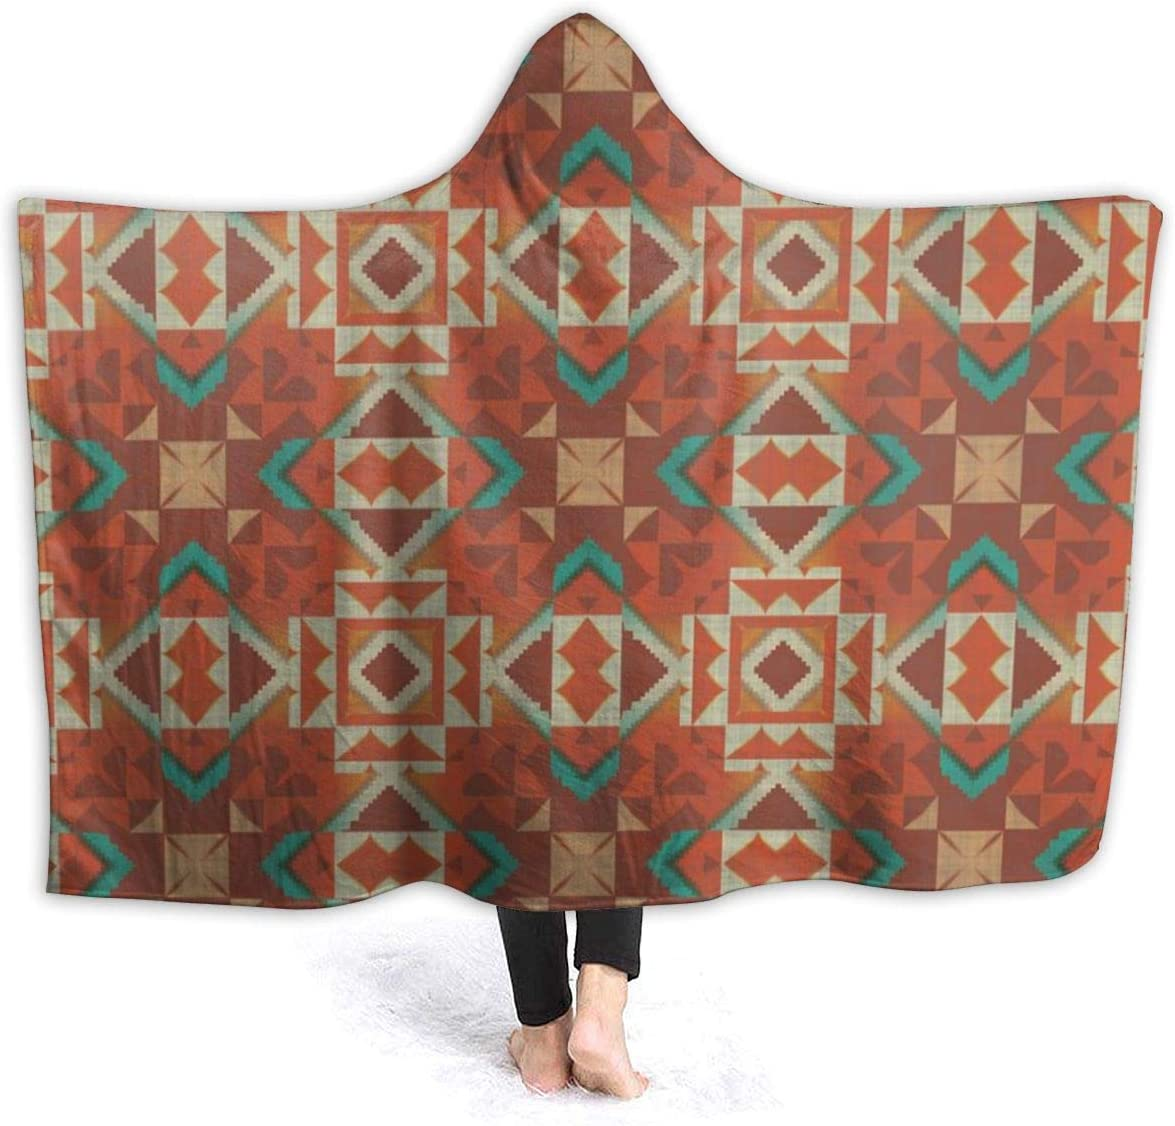 Hooded Flannel Max 61% OFF Blanket ! Super beauty product restock quality top! Tribal Mosaic Ethnic Cozy Native American